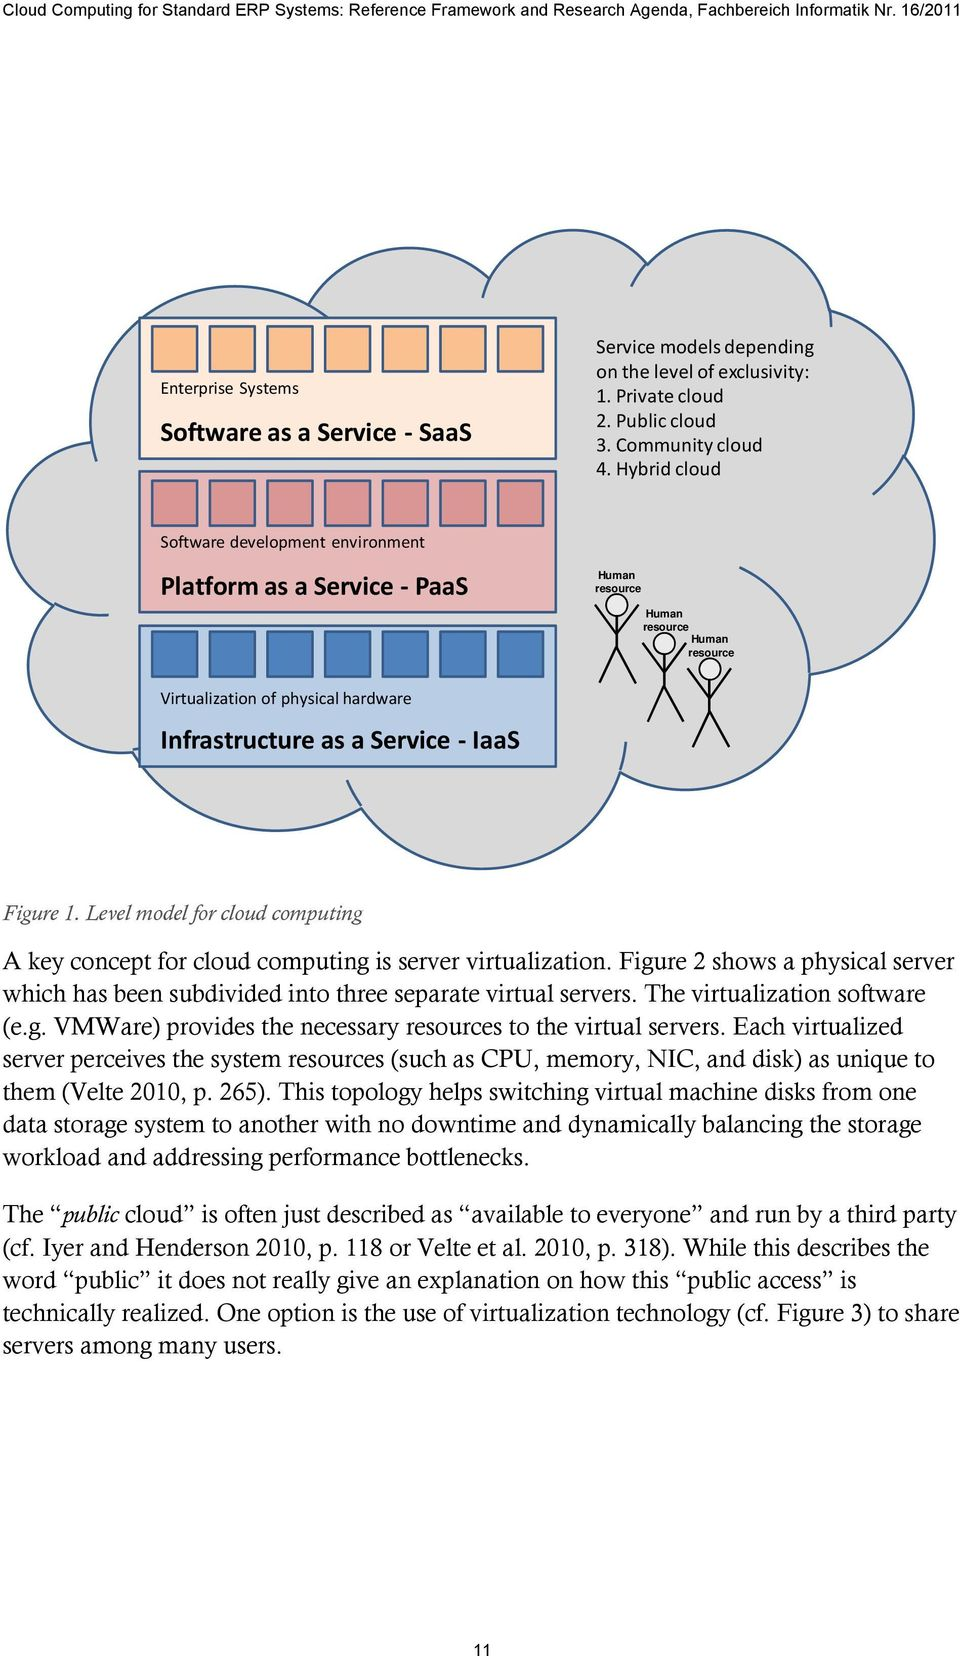 Level model for cloud computing A key concept for cloud computing is server virtualization. Figure 2 shows a physical server which has been subdivided into three separate virtual servers.